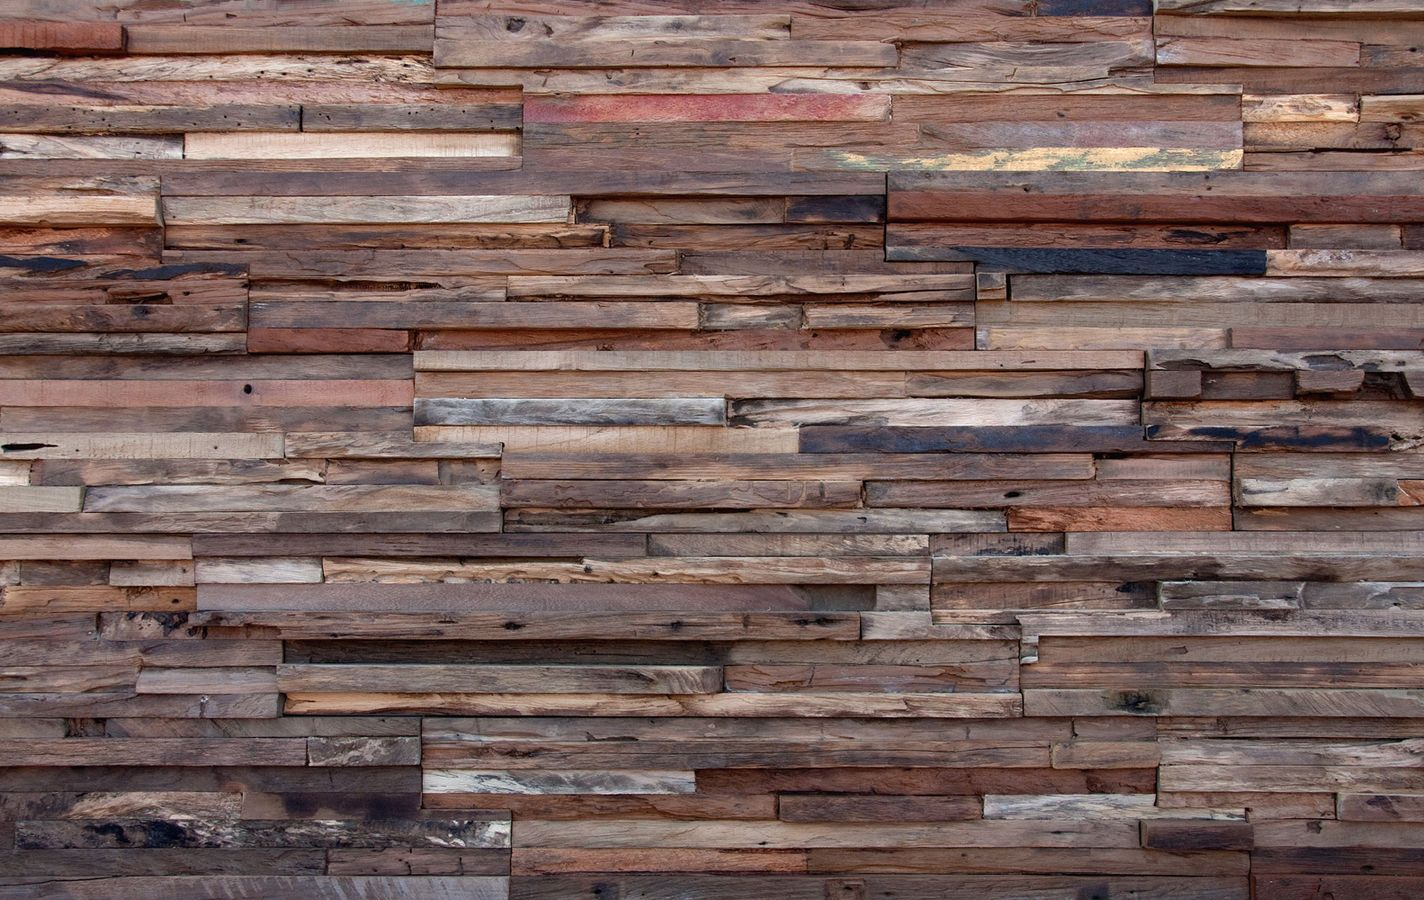 Decorative Wood Wall Tiles Decorative Wall Paneling 1424X900 Decorative Wooden Wall Panel